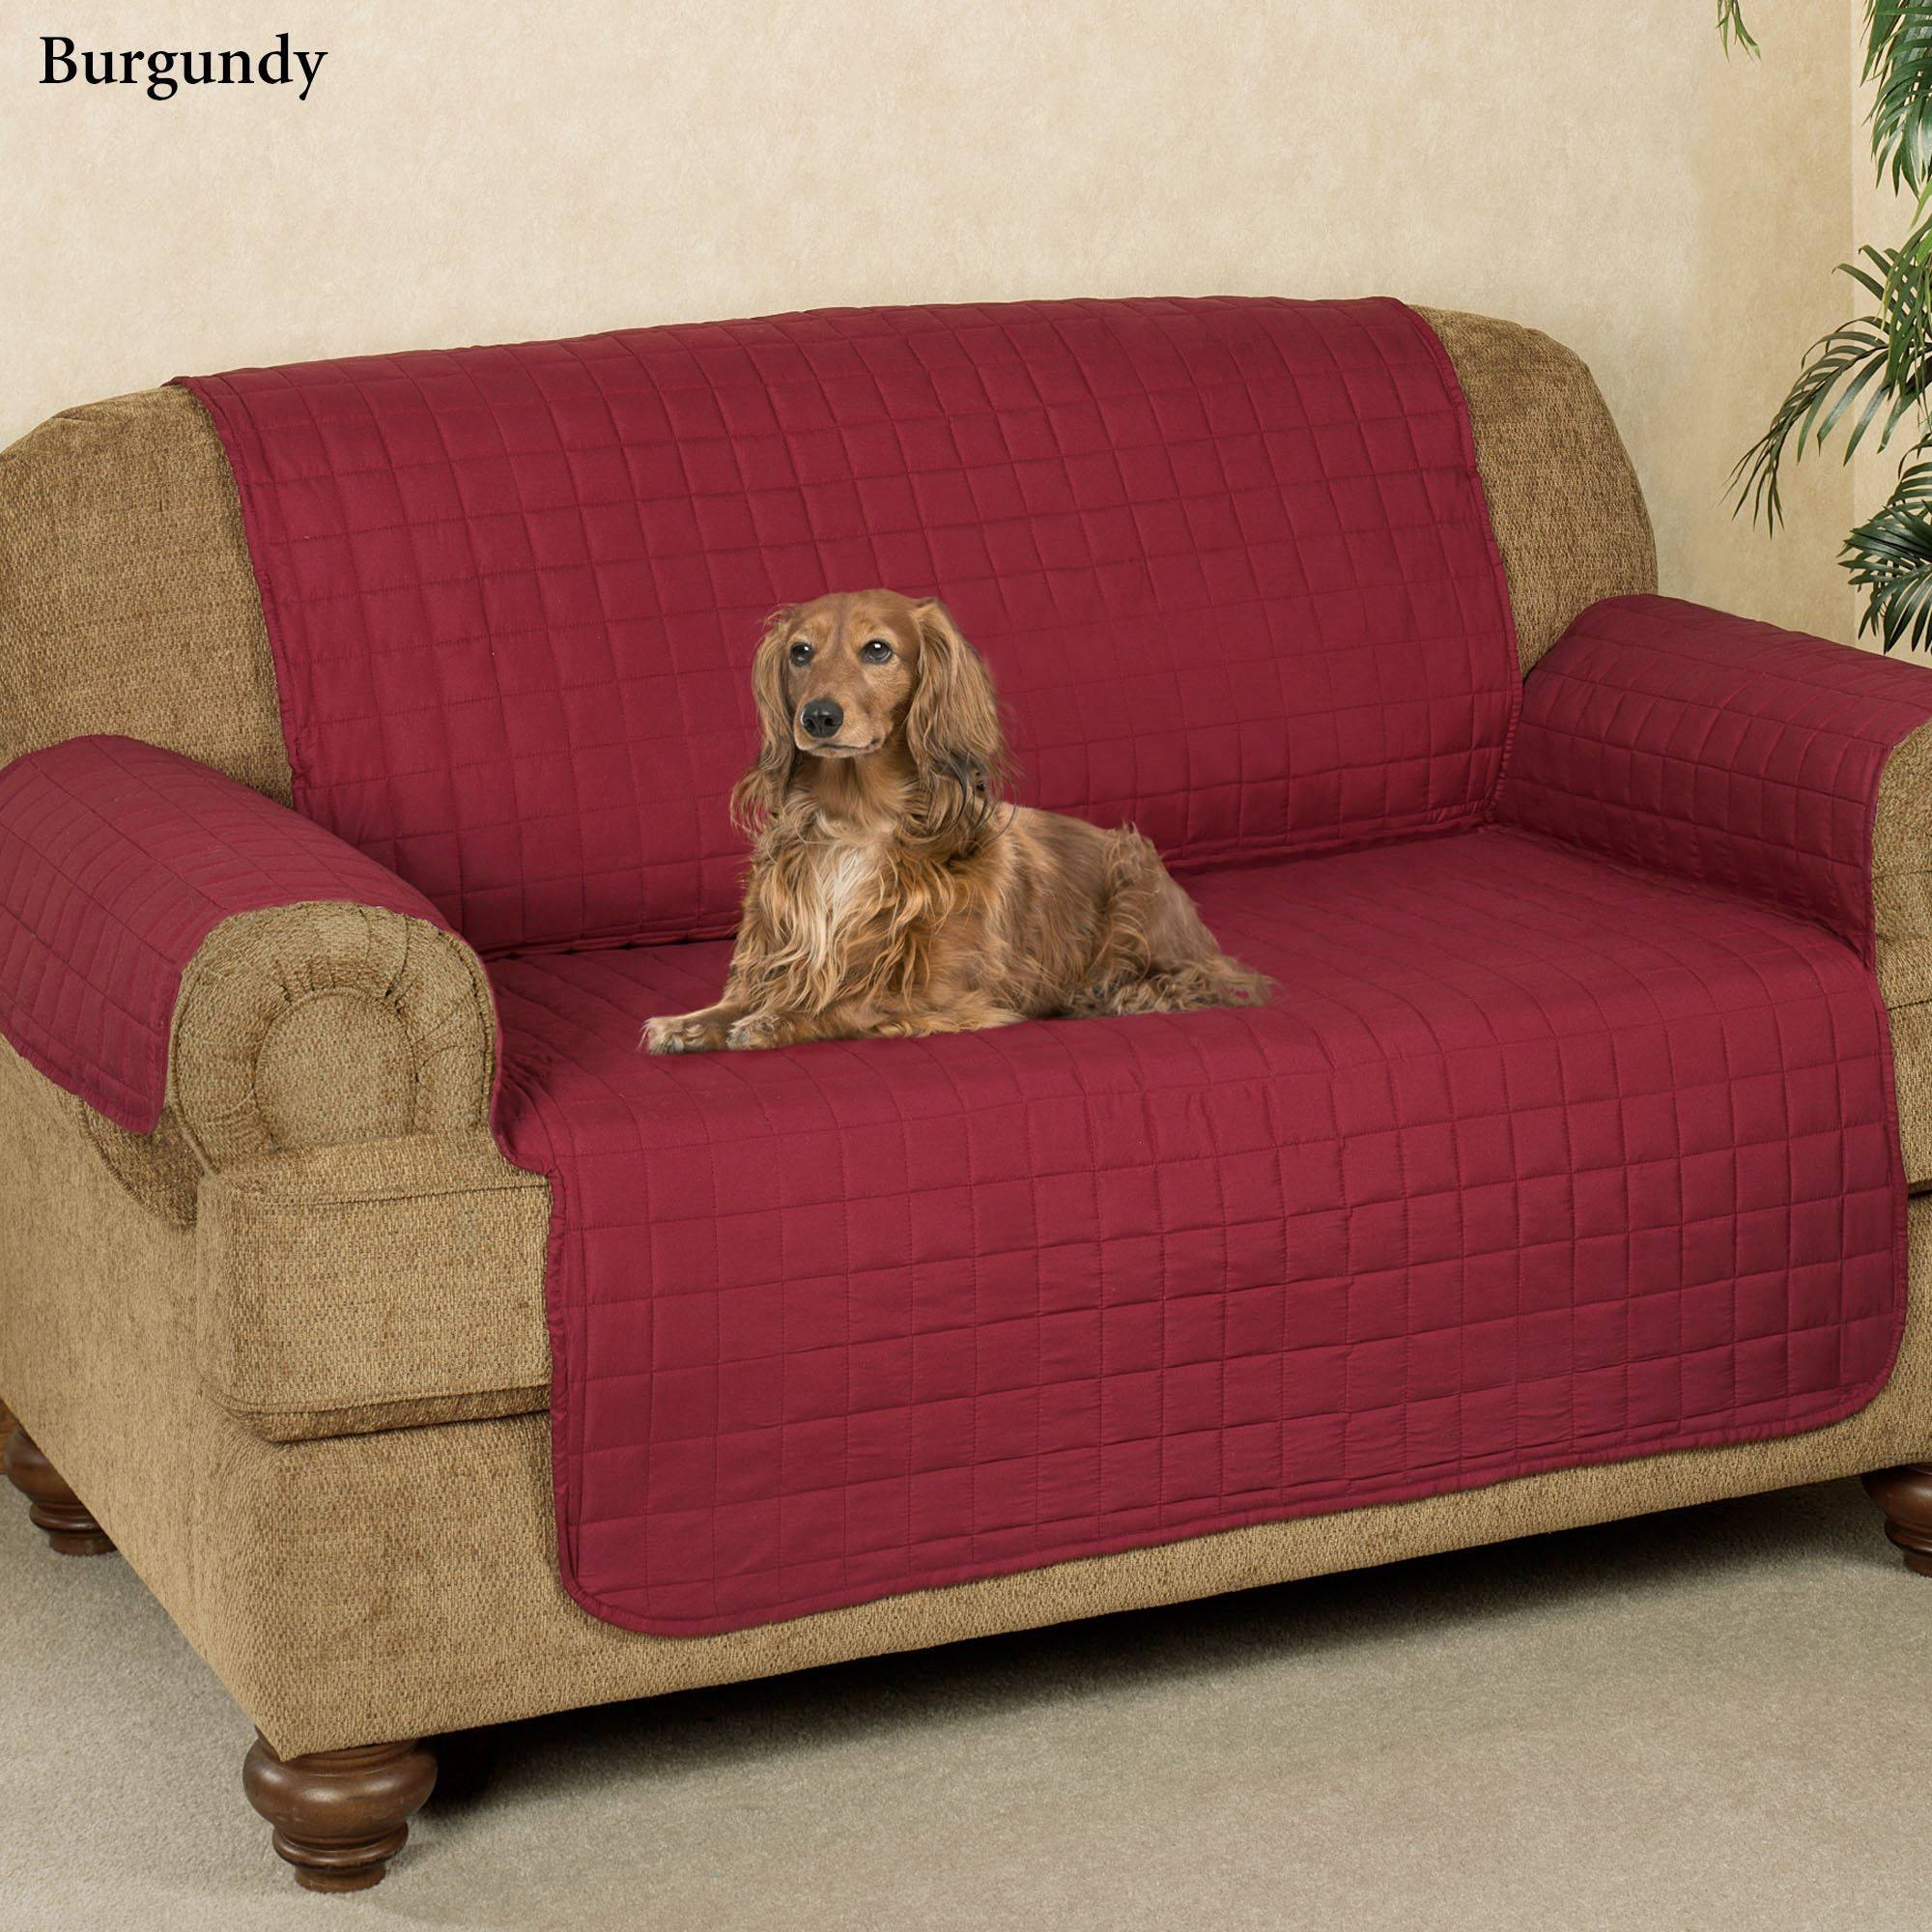 Microfiber Pet Furniture Covers With Tuck In Flaps within Sofa and Loveseat Covers (Image 9 of 15)